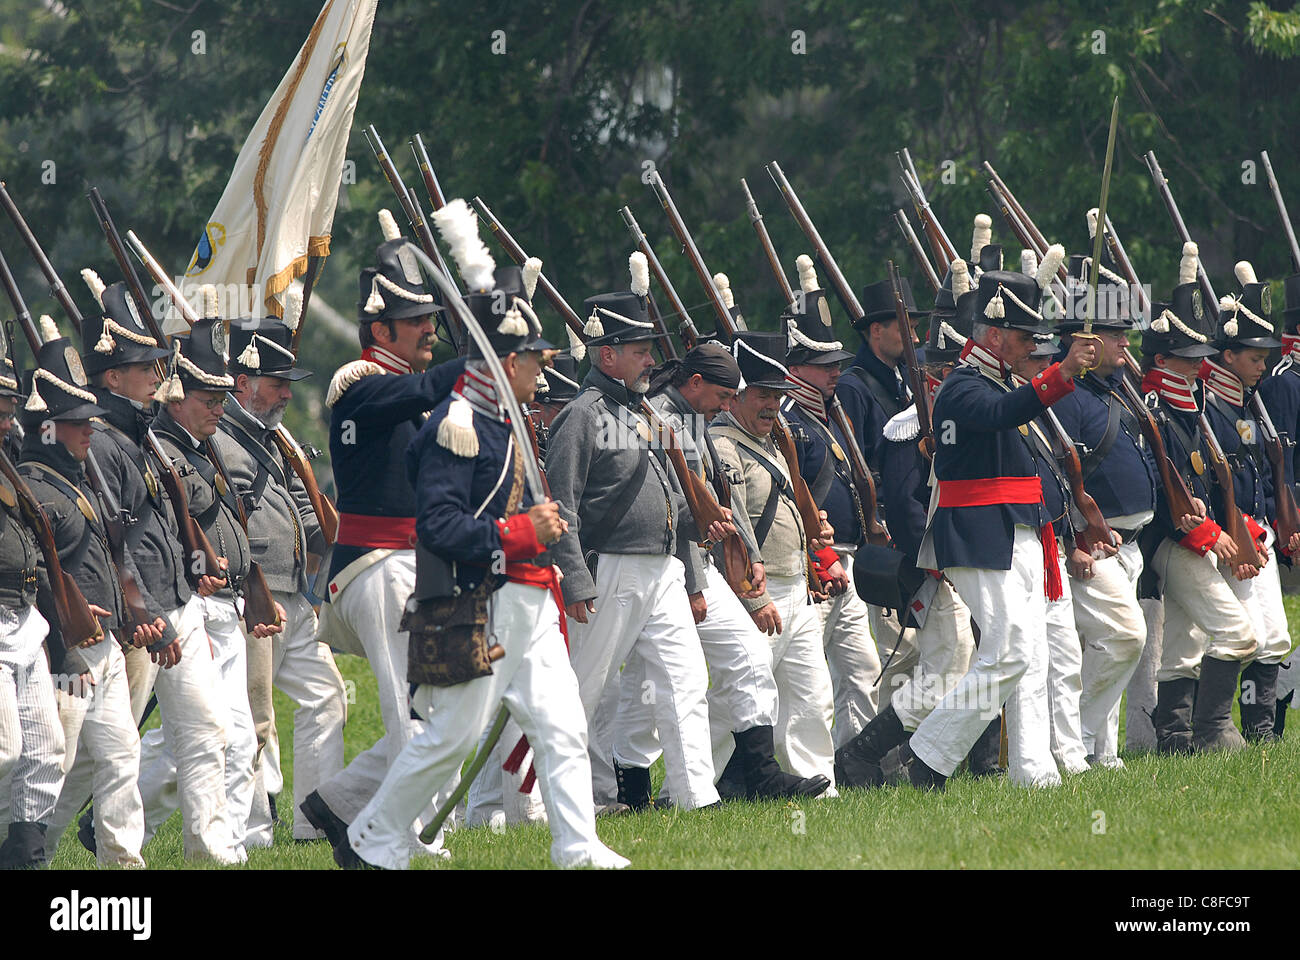 American soldiers advance during the Siege of Fort Erie War of 1812 battle  reenactment - Stock